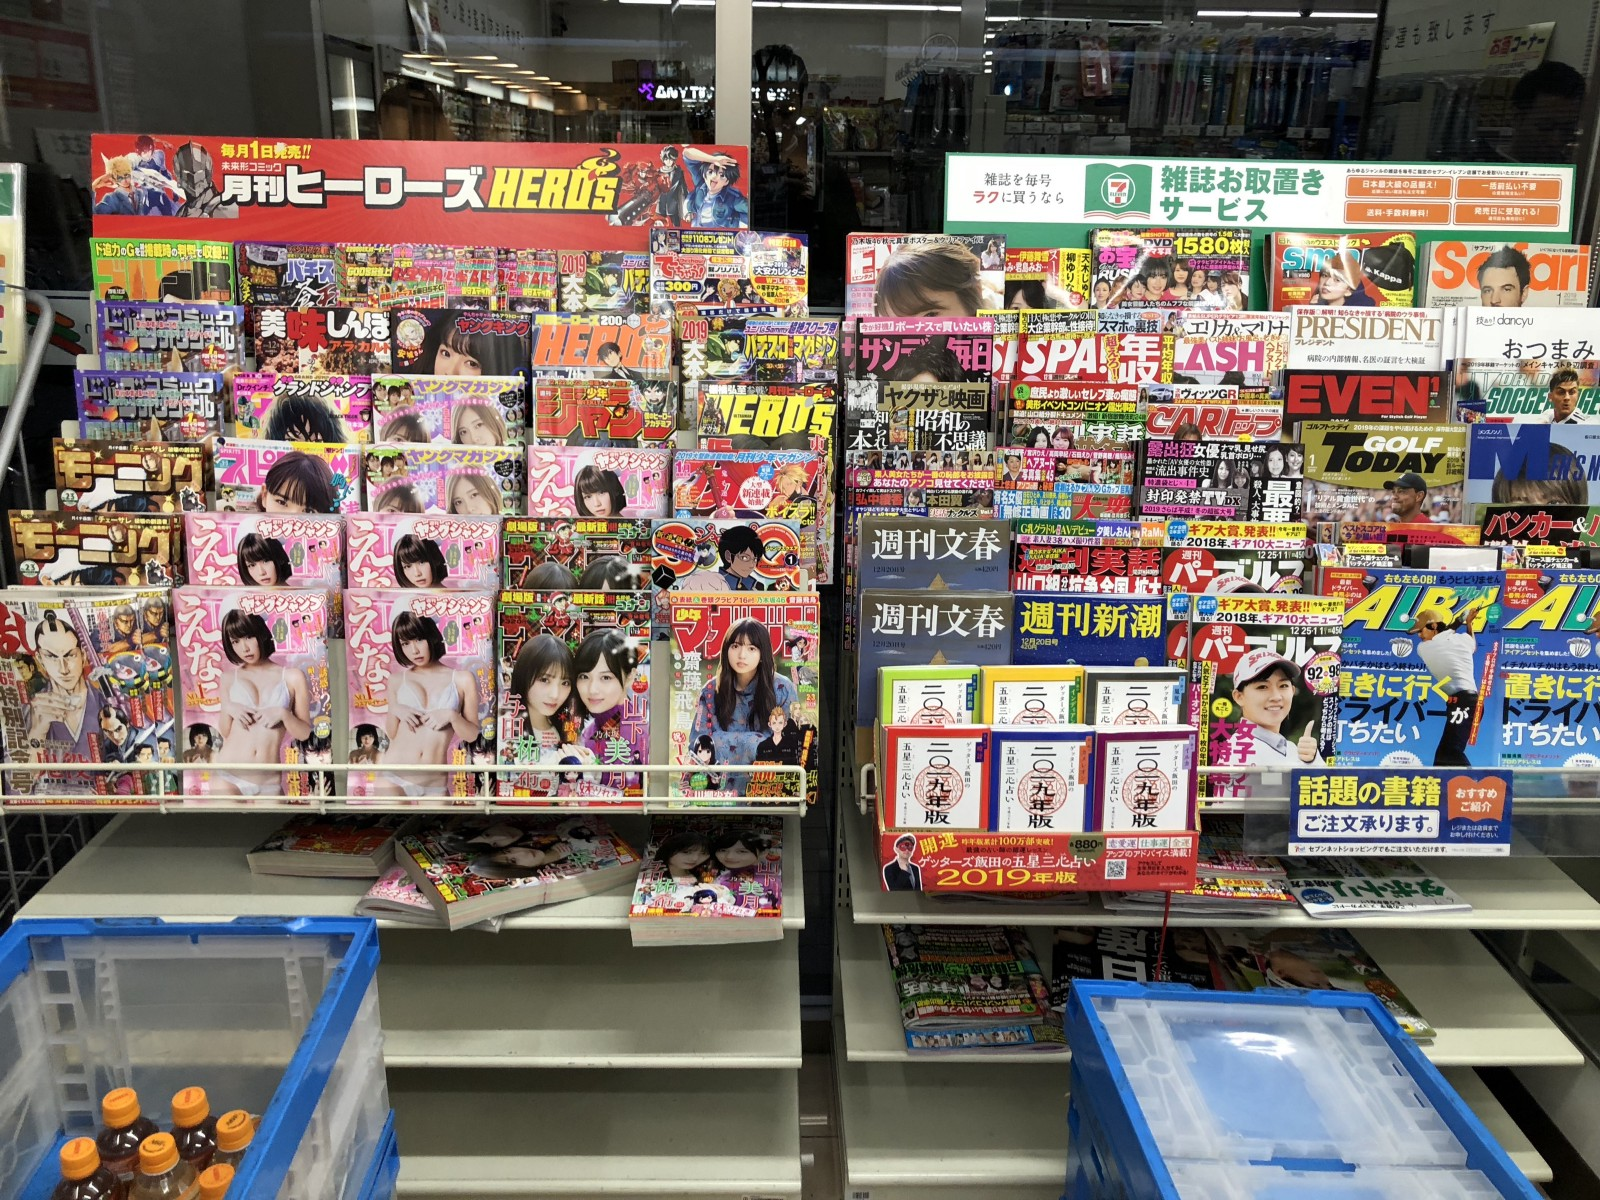 ee9fdc60c0 This is an interesting part of Japanese convenience stores: books and  magazines. A variety of books are lined on the bookshelves from manga  magazines to ...